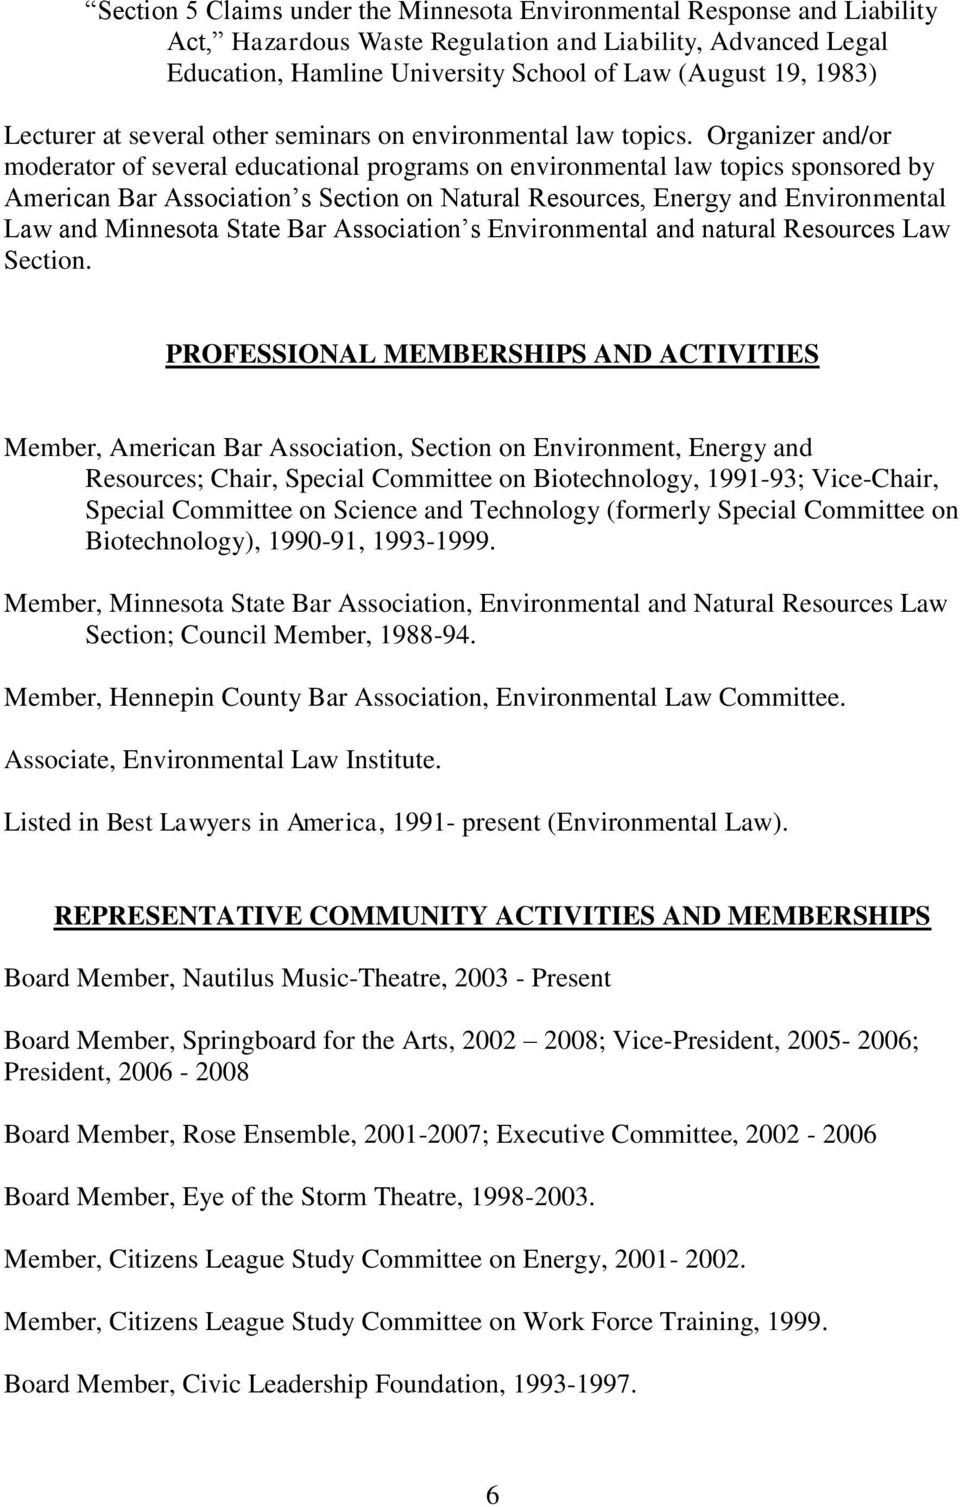 Organizer and/or moderator of several educational programs on environmental law topics sponsored by American Bar Association s Section on Natural Resources, Energy and Environmental Law and Minnesota